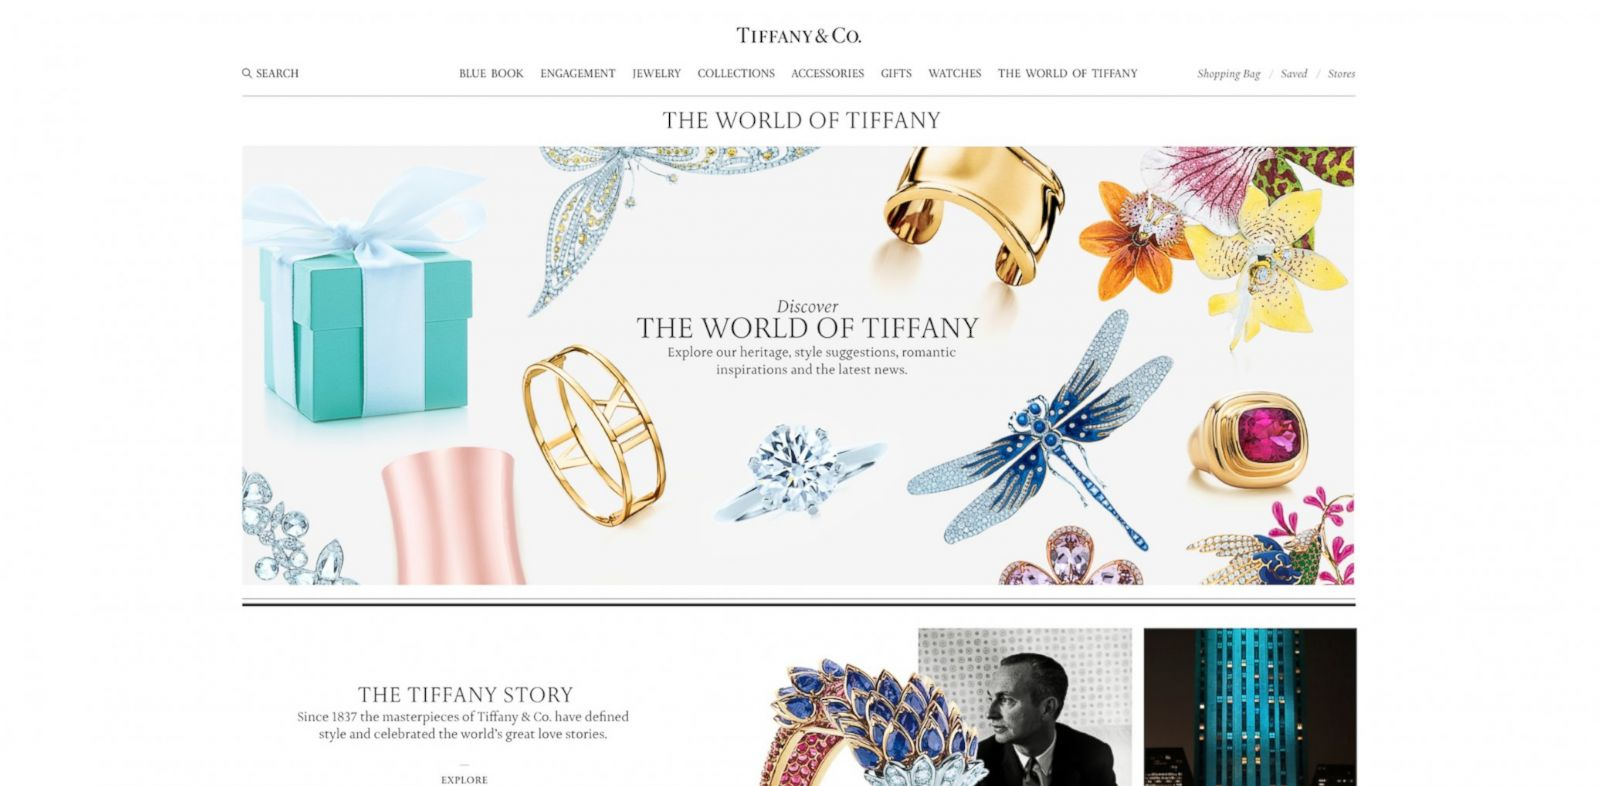 PHOTO: The World of Tiffany page on the new Tiffany.com